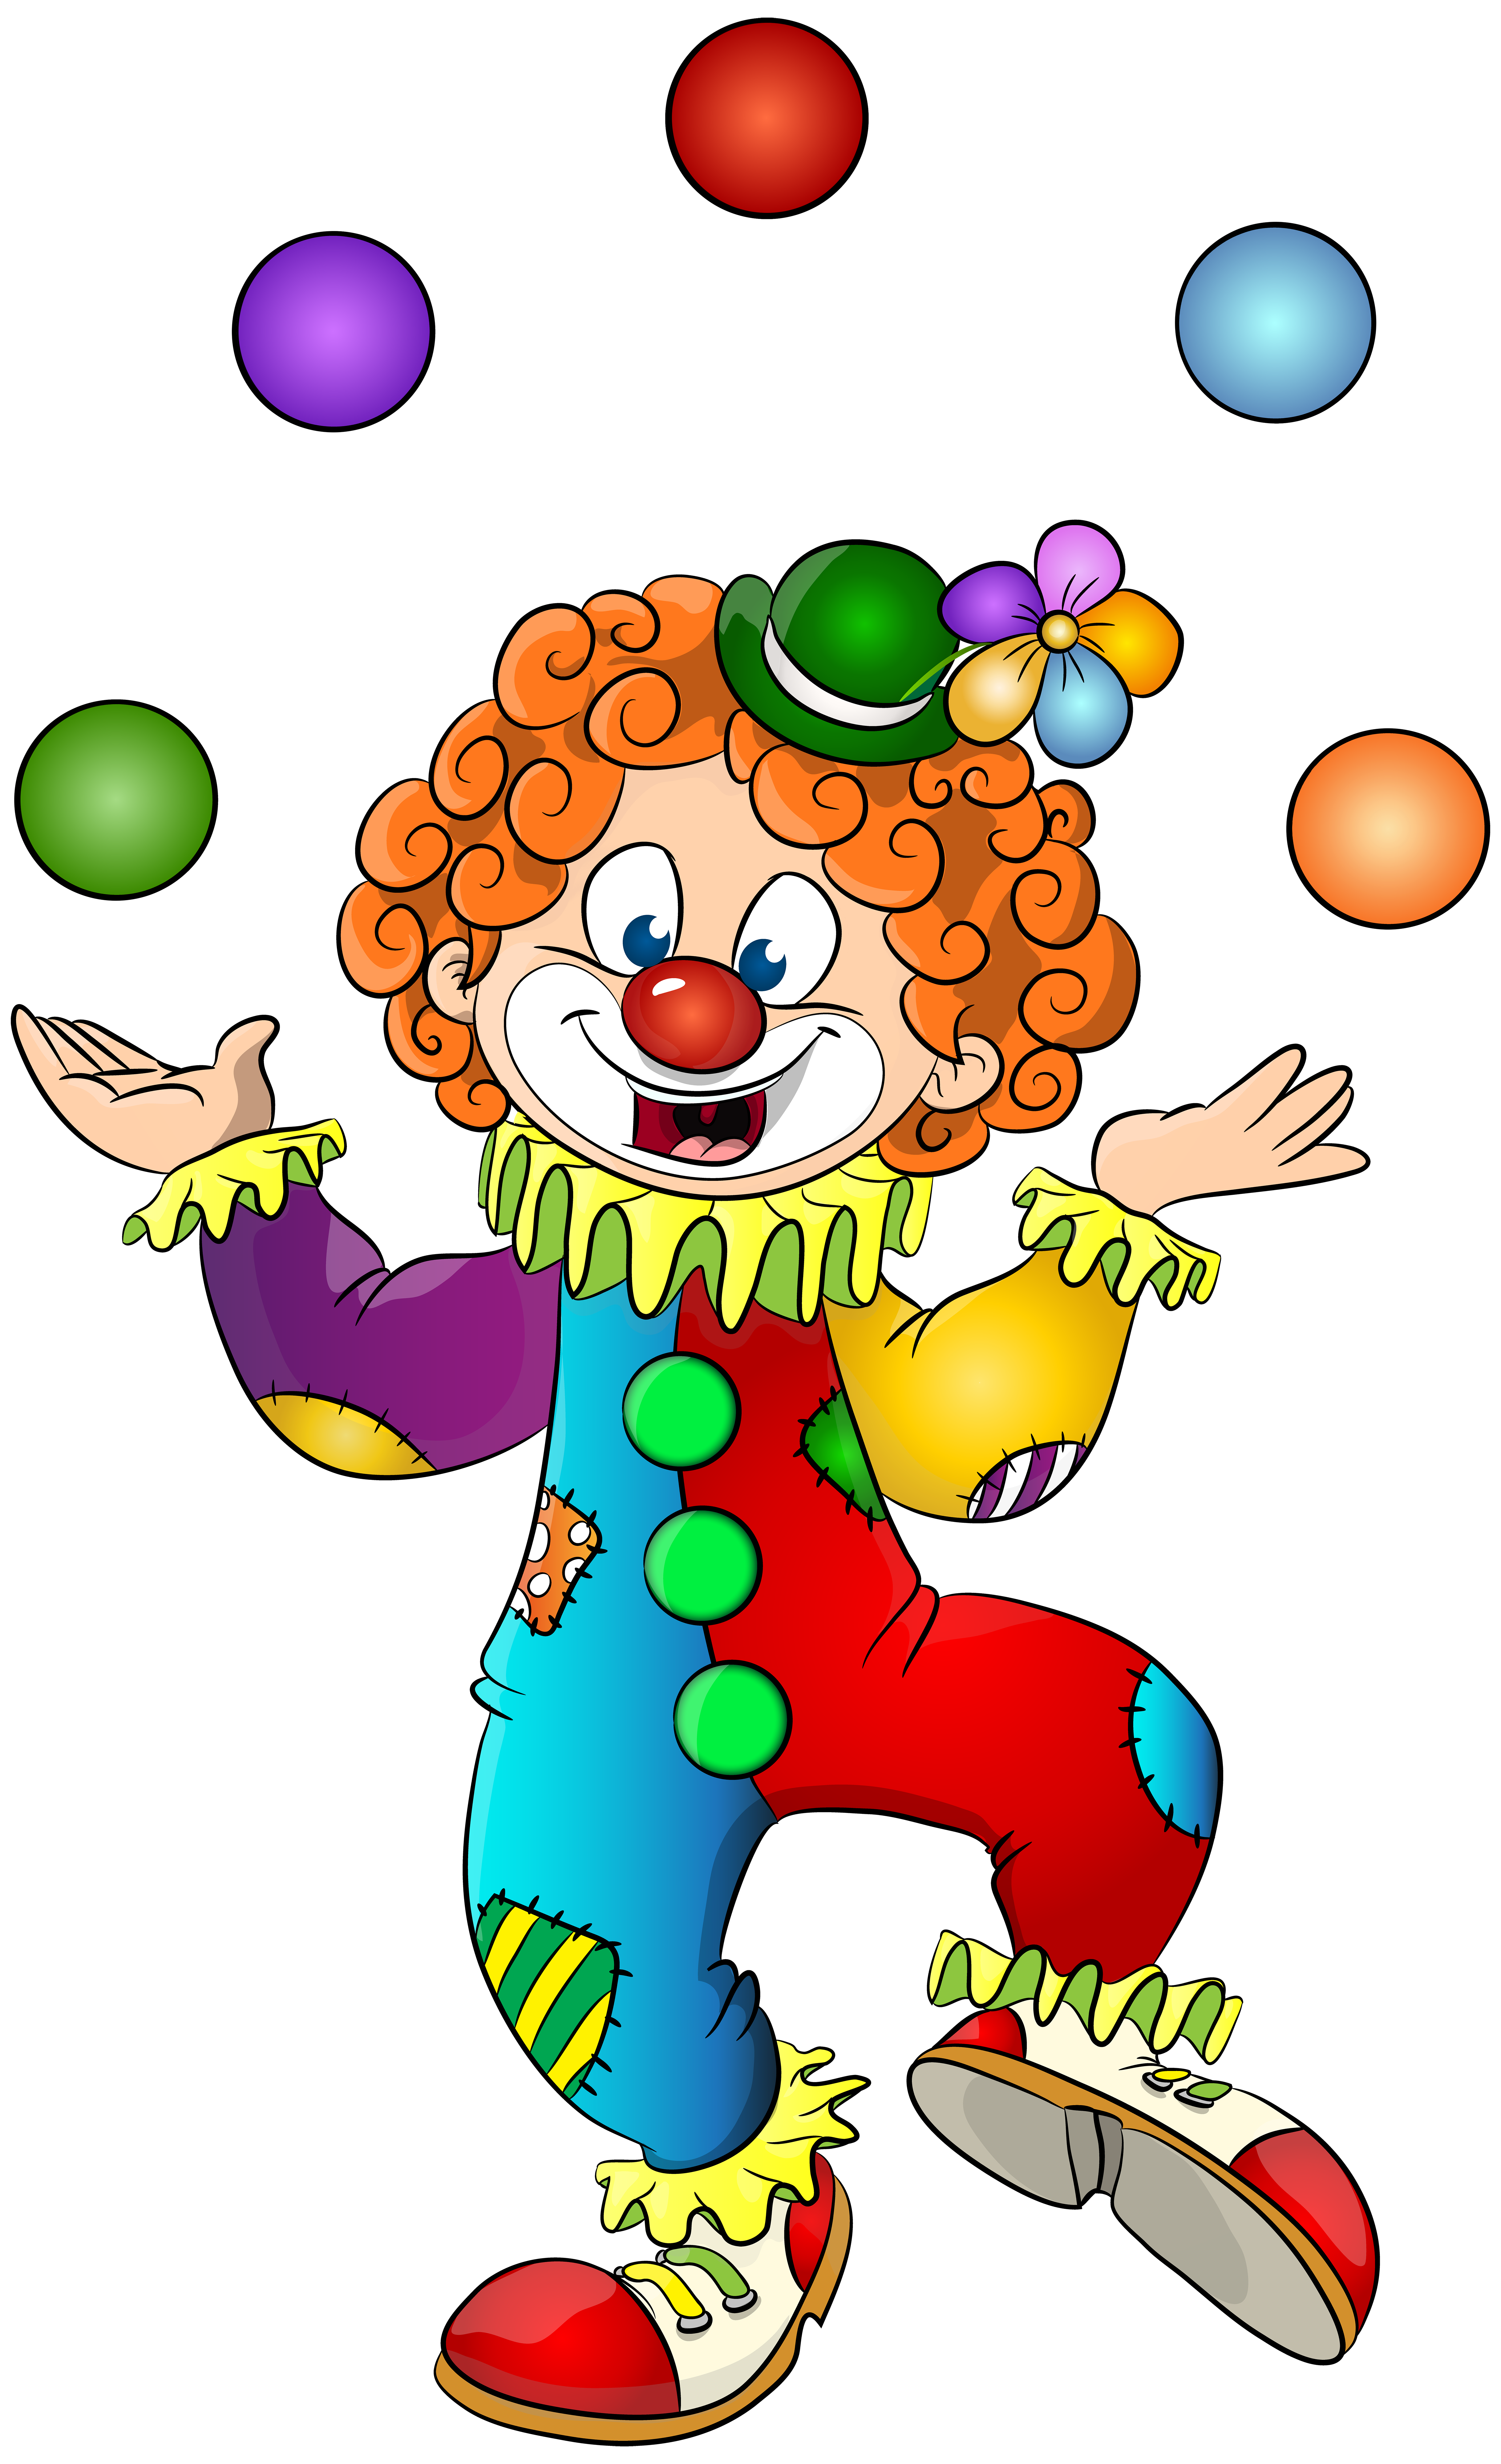 Clown Transparent Clip Art Image.